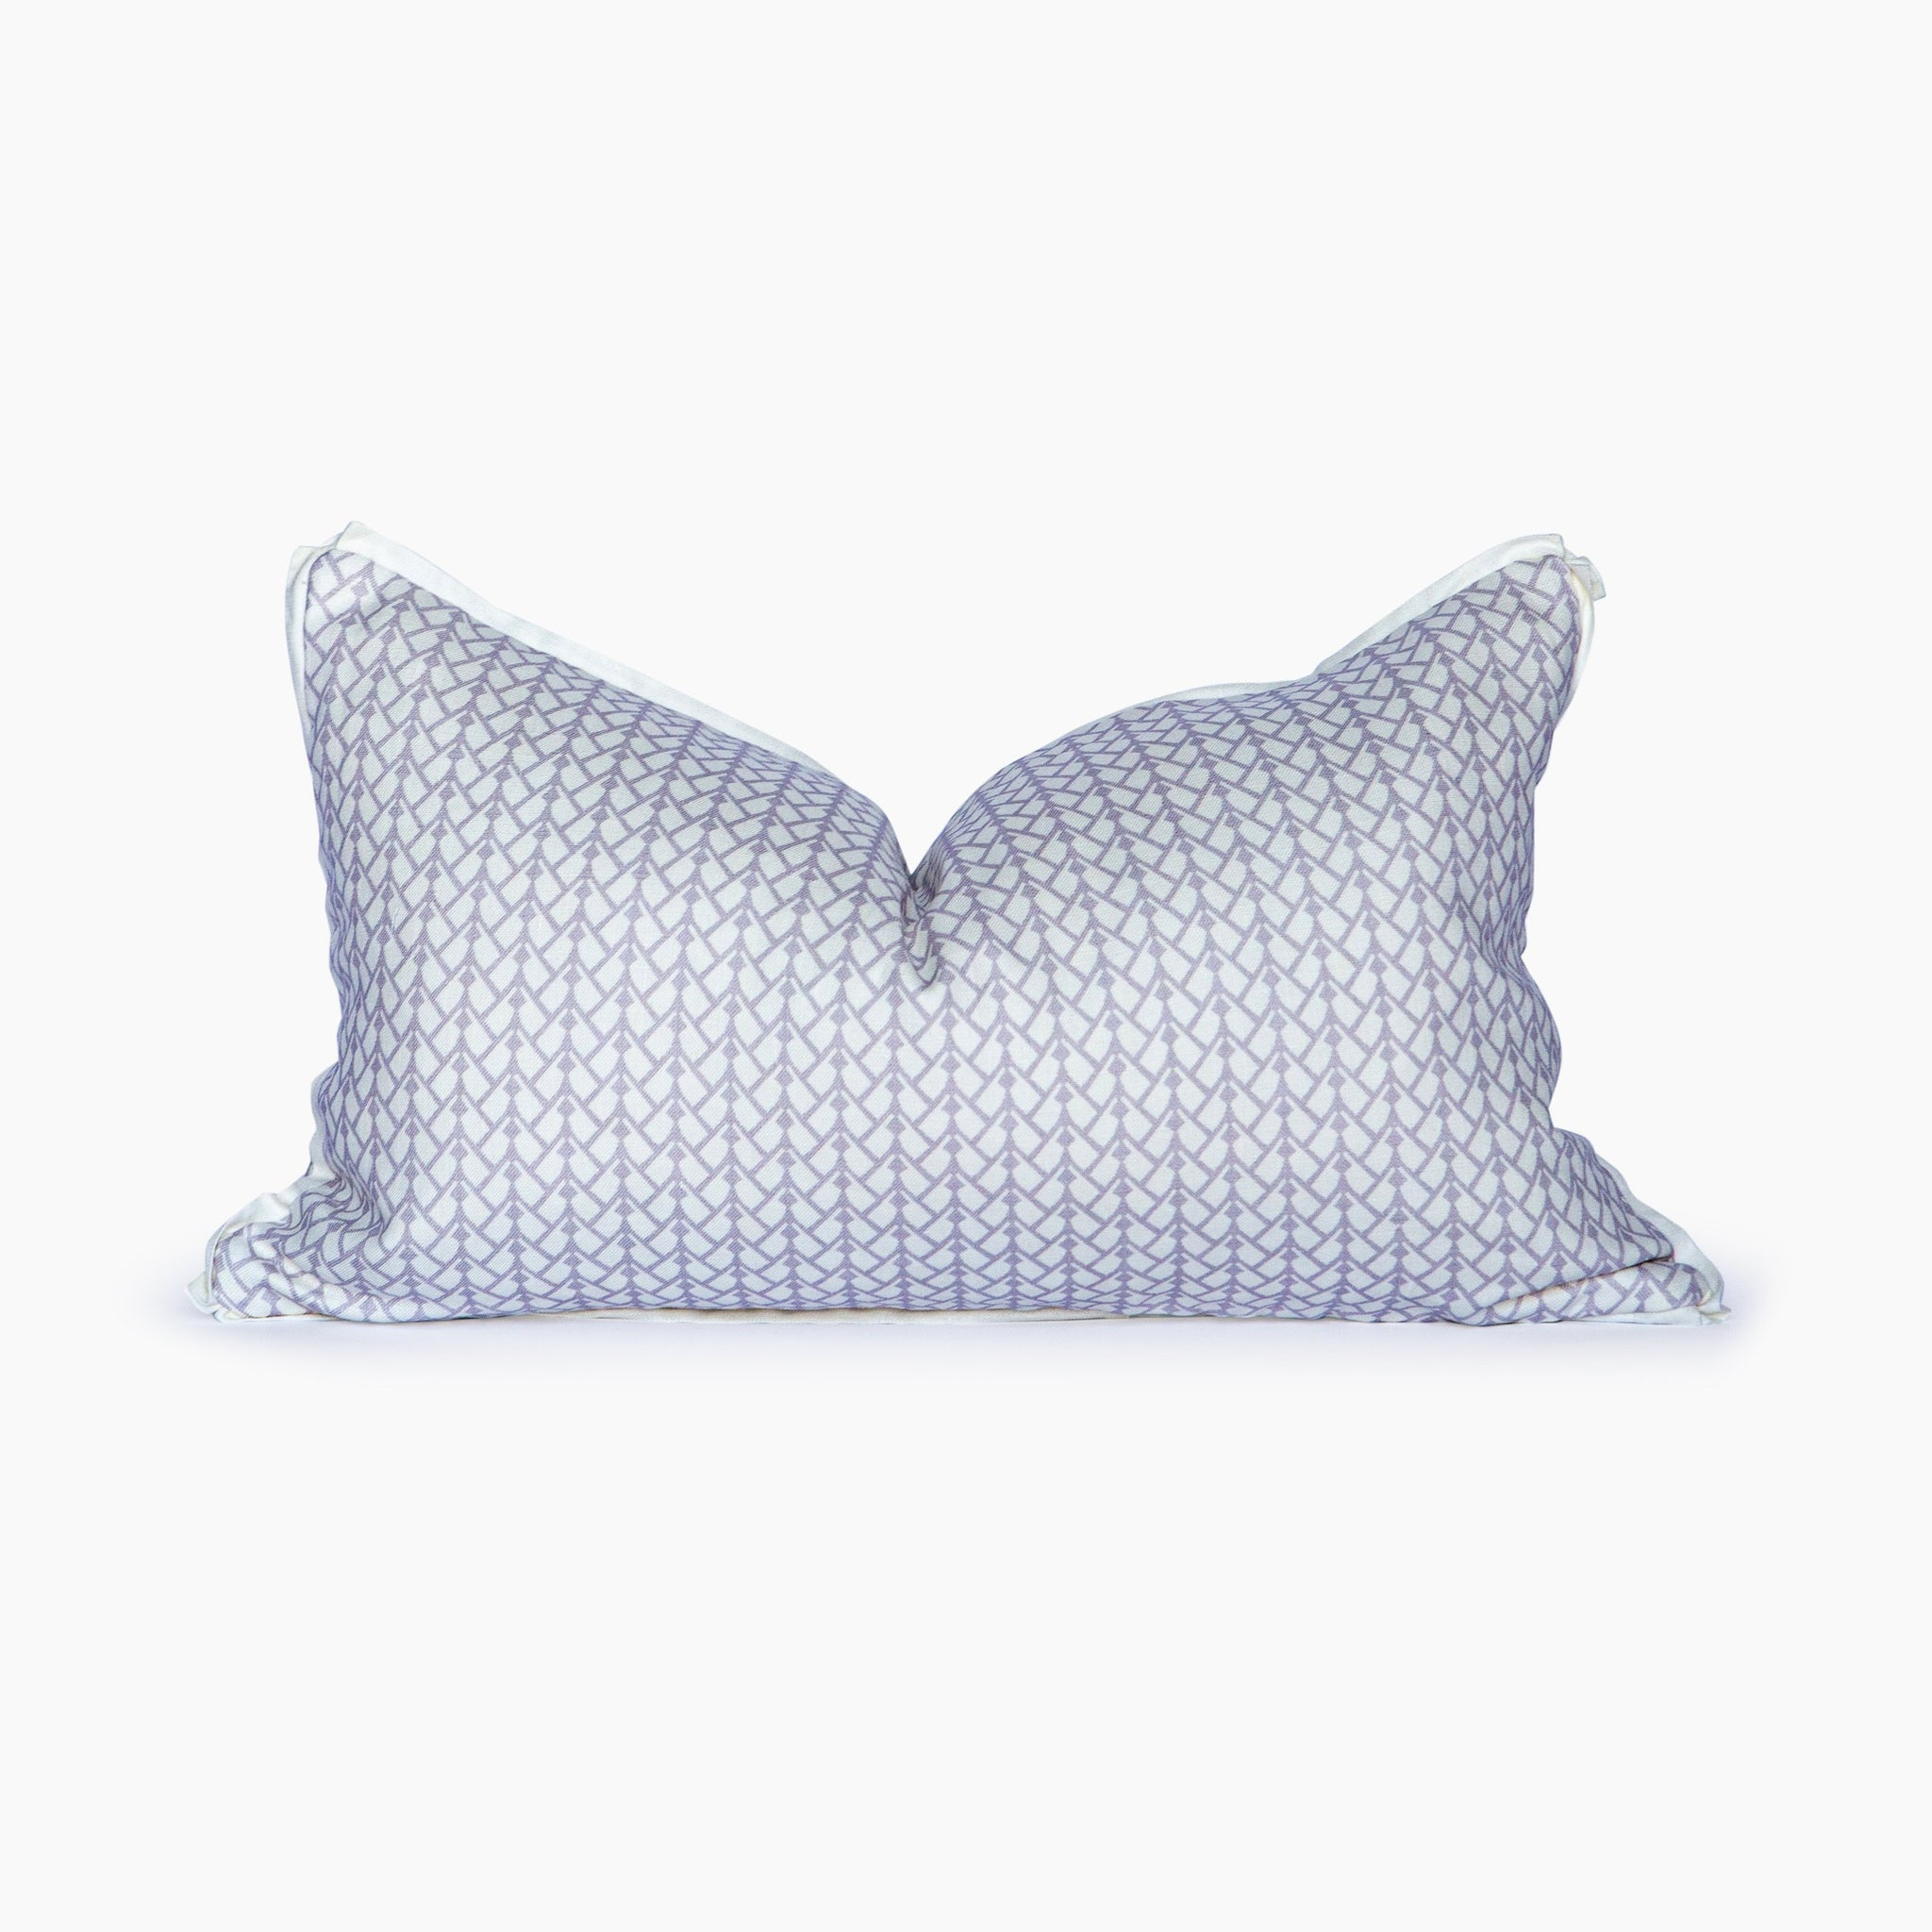 Oklahoma Herringbone Heather Lumbar Pillow